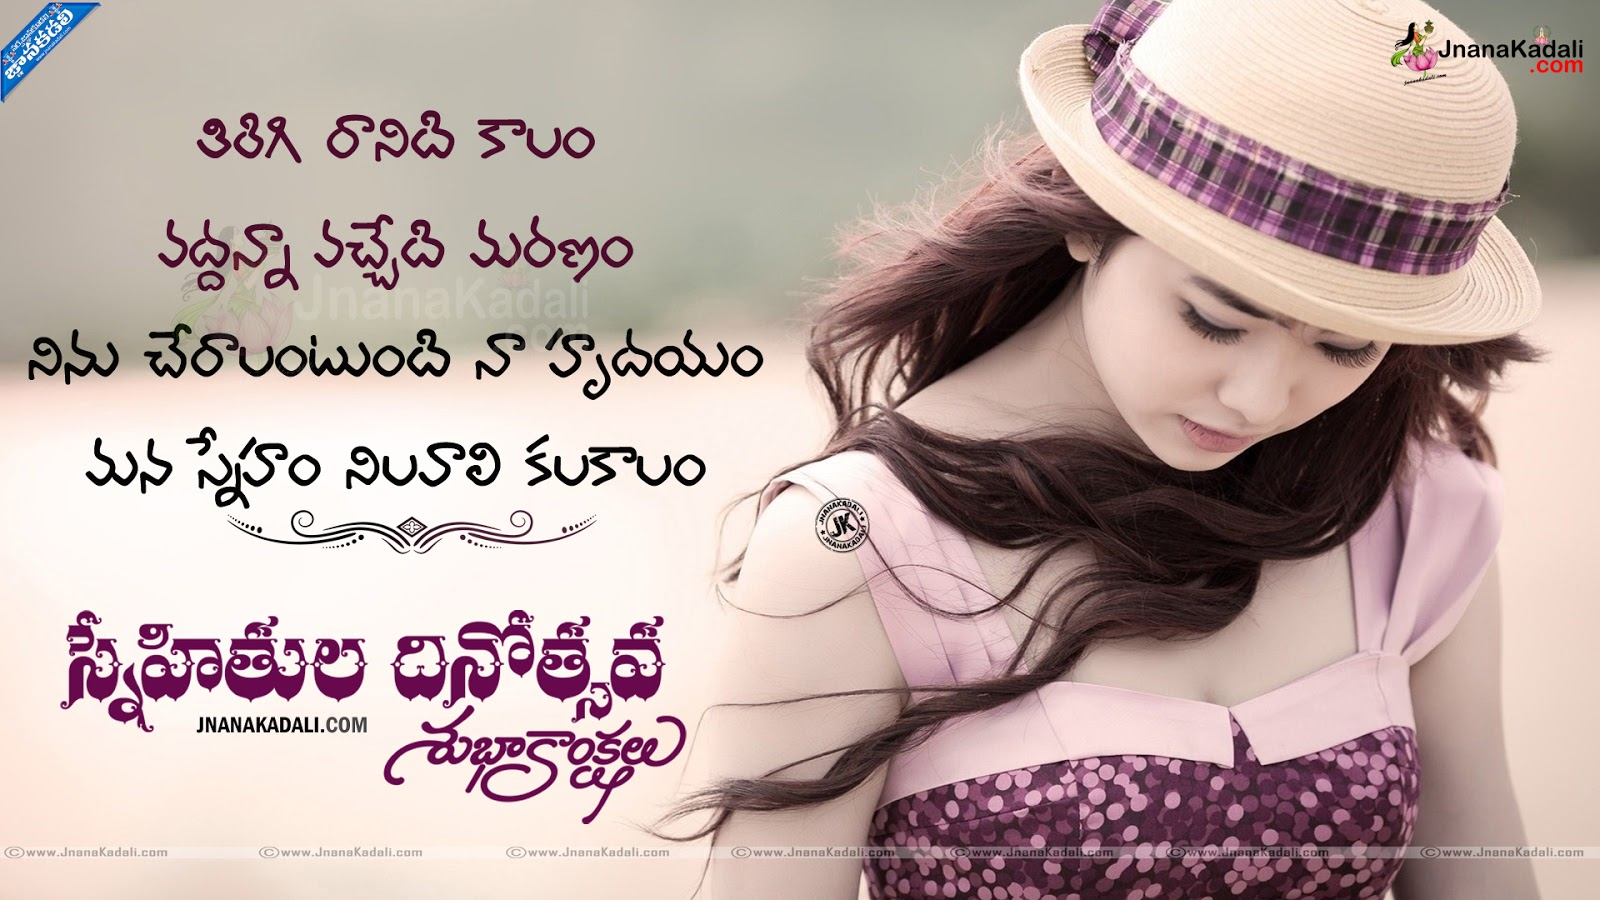 Touching Quotes About Friendship Friendship Day Quotes In Telugu With Heart Touching Telugu Poetry